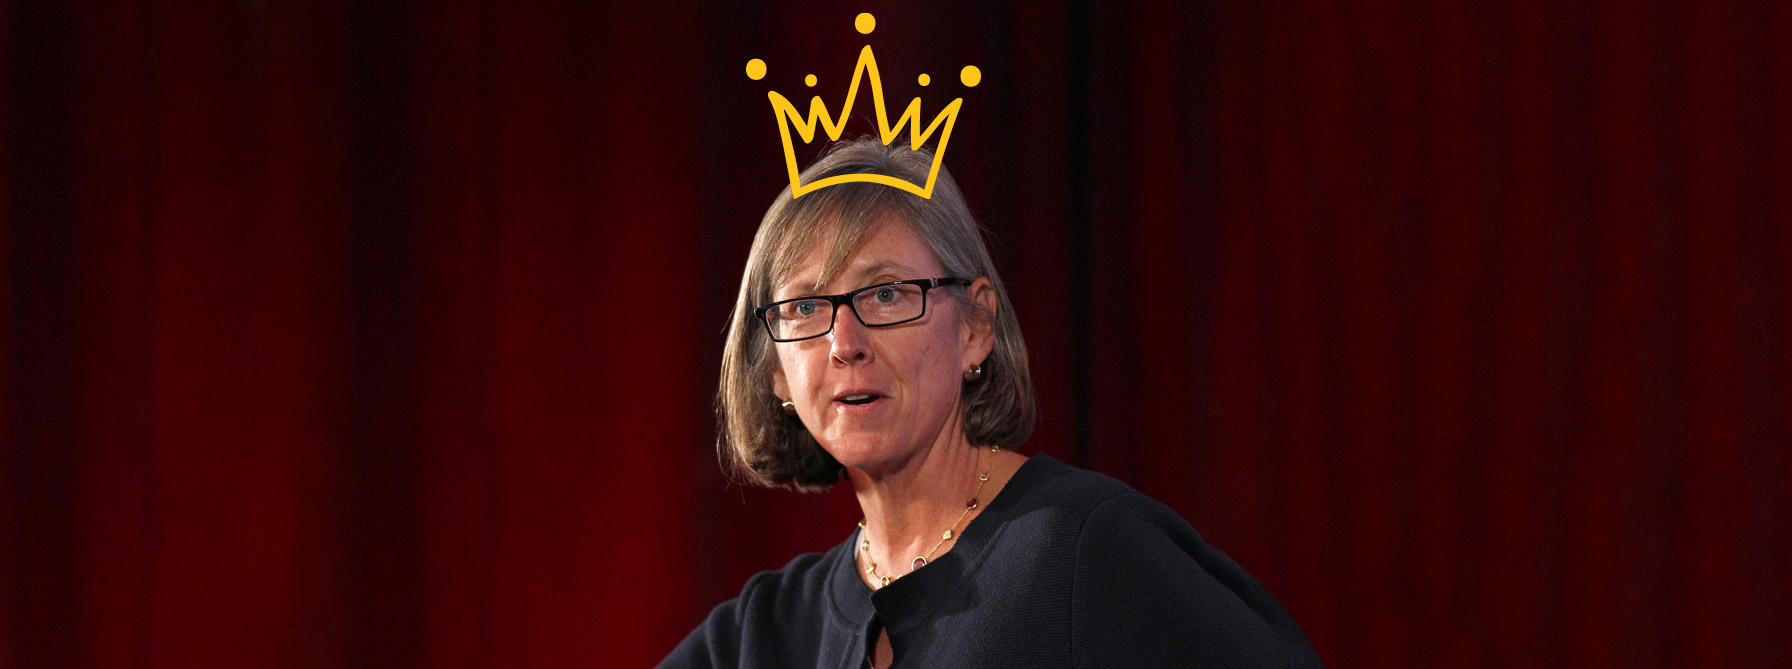 Mary Meeker: 7 internet trends for finance brands to watch header